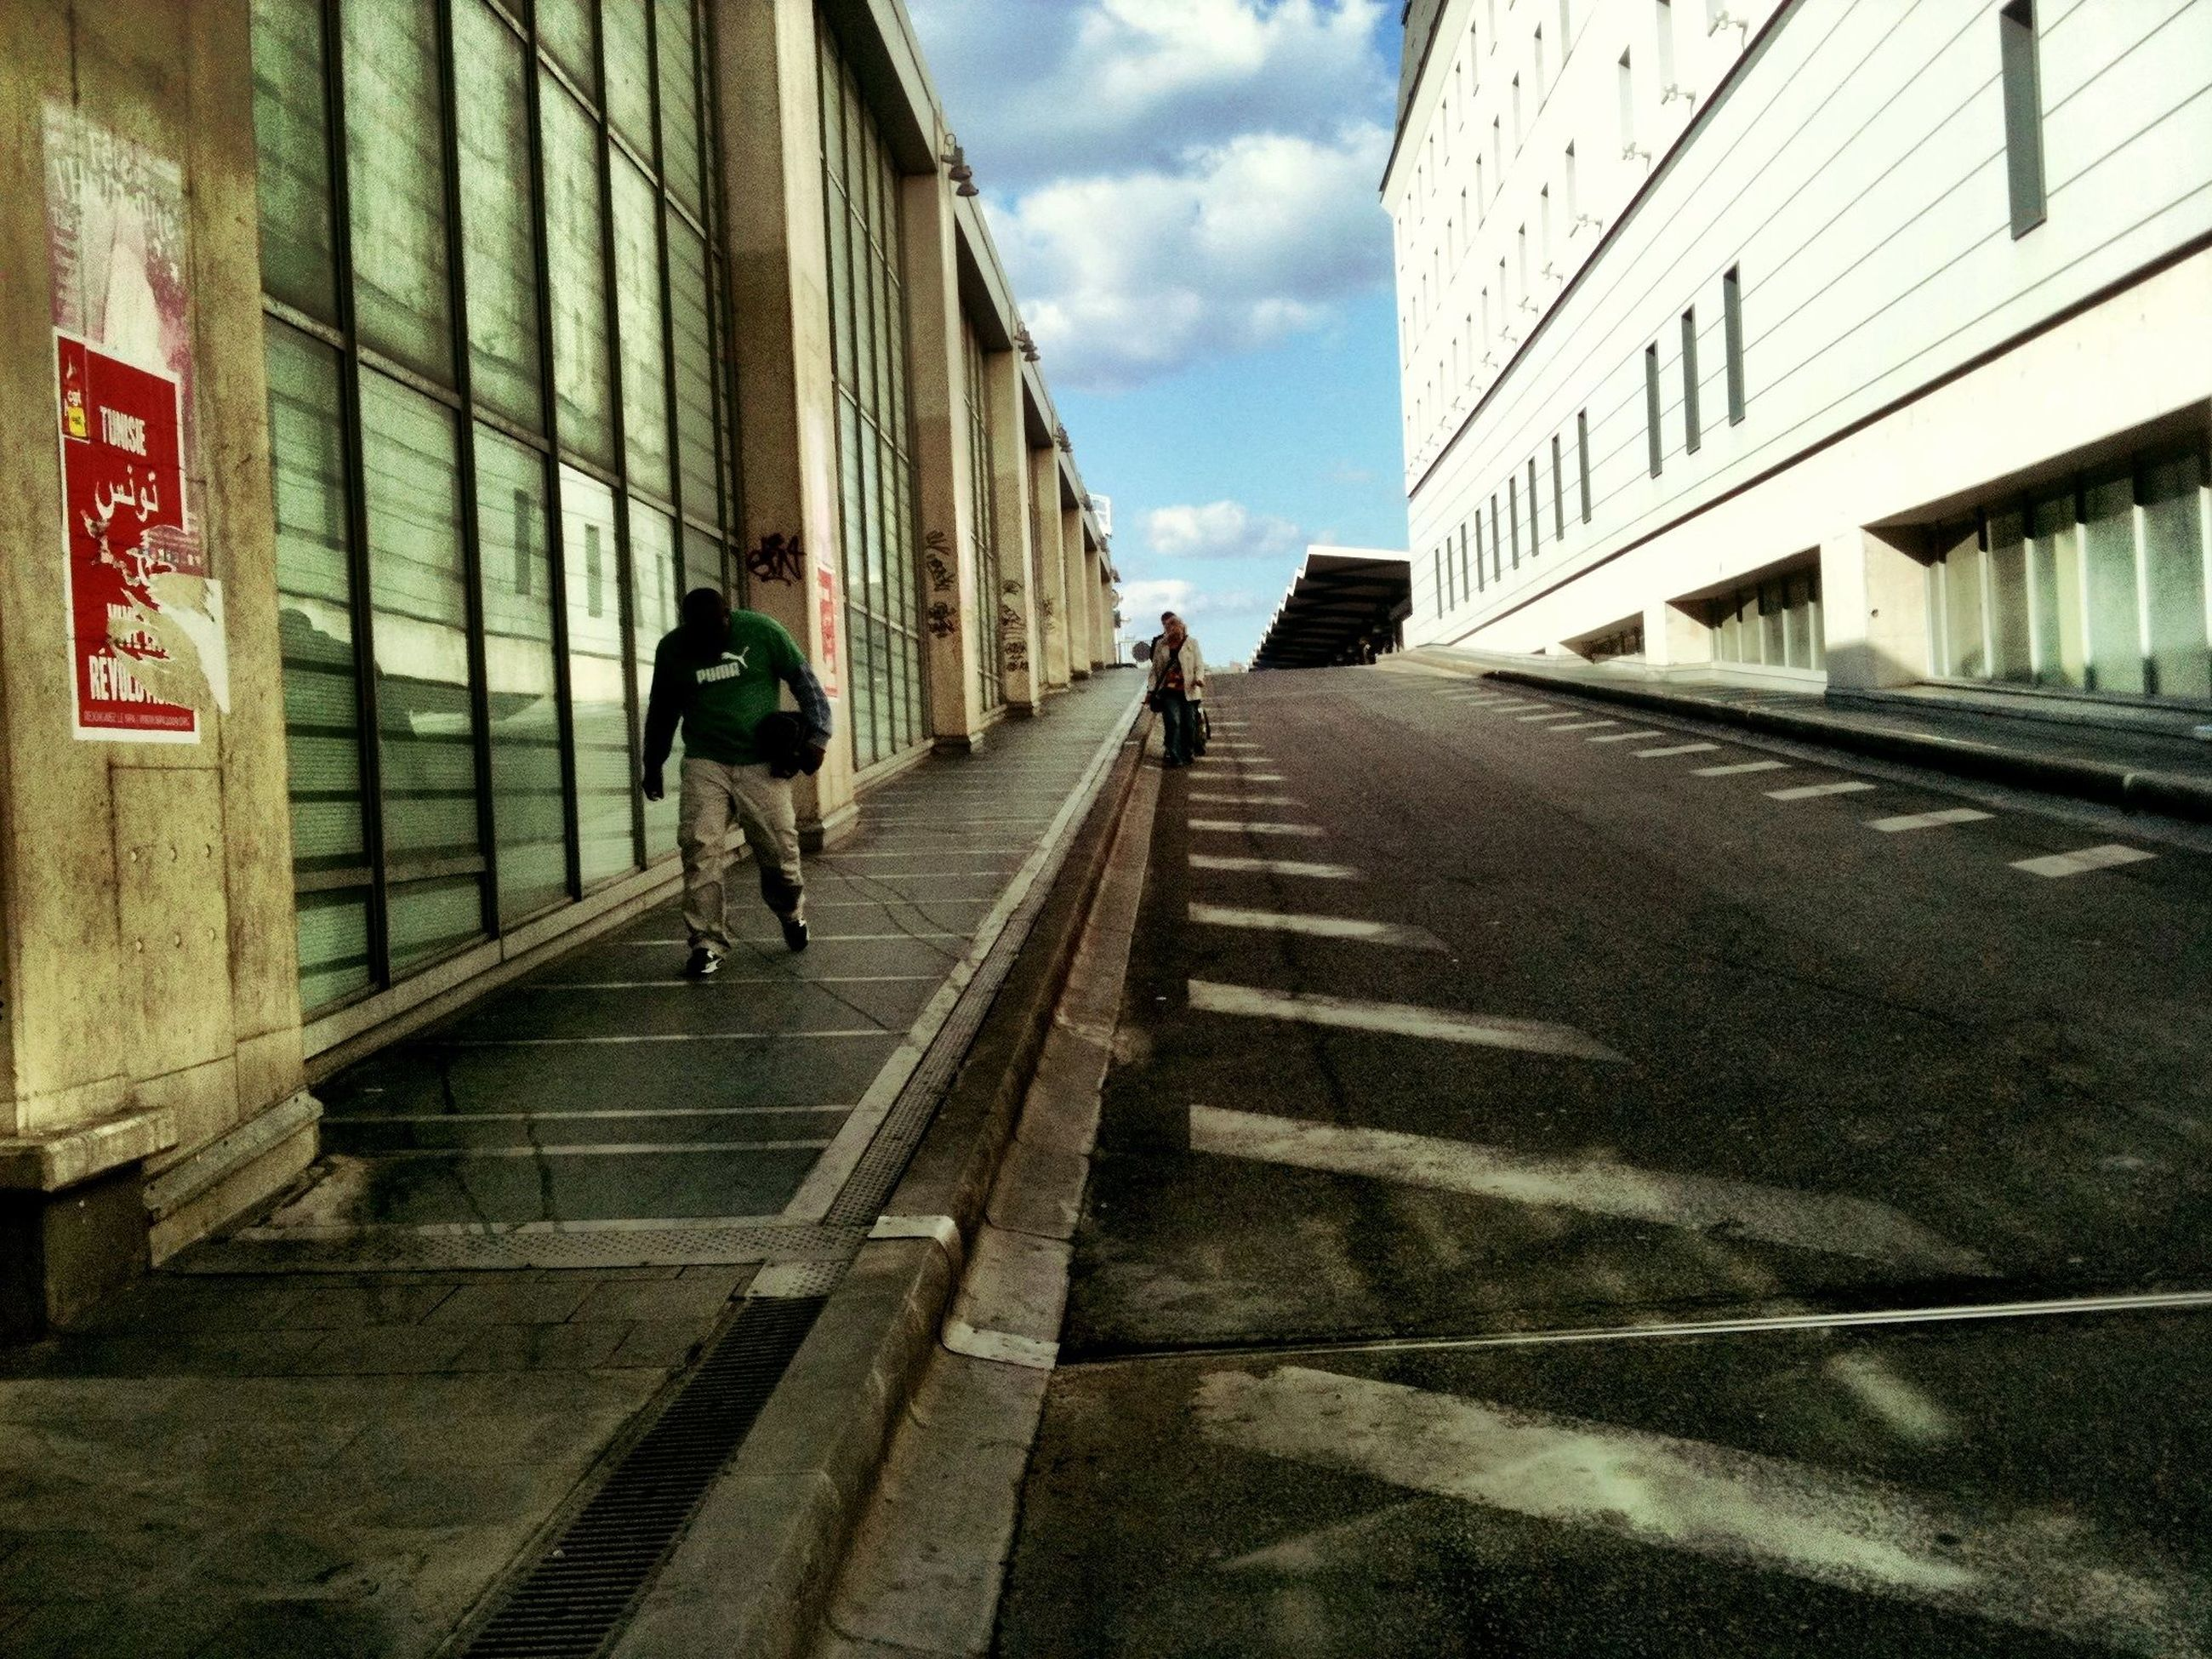 sky, built structure, building exterior, architecture, the way forward, men, full length, walking, lifestyles, cloud - sky, transportation, cloud, diminishing perspective, leisure activity, street, day, city, person